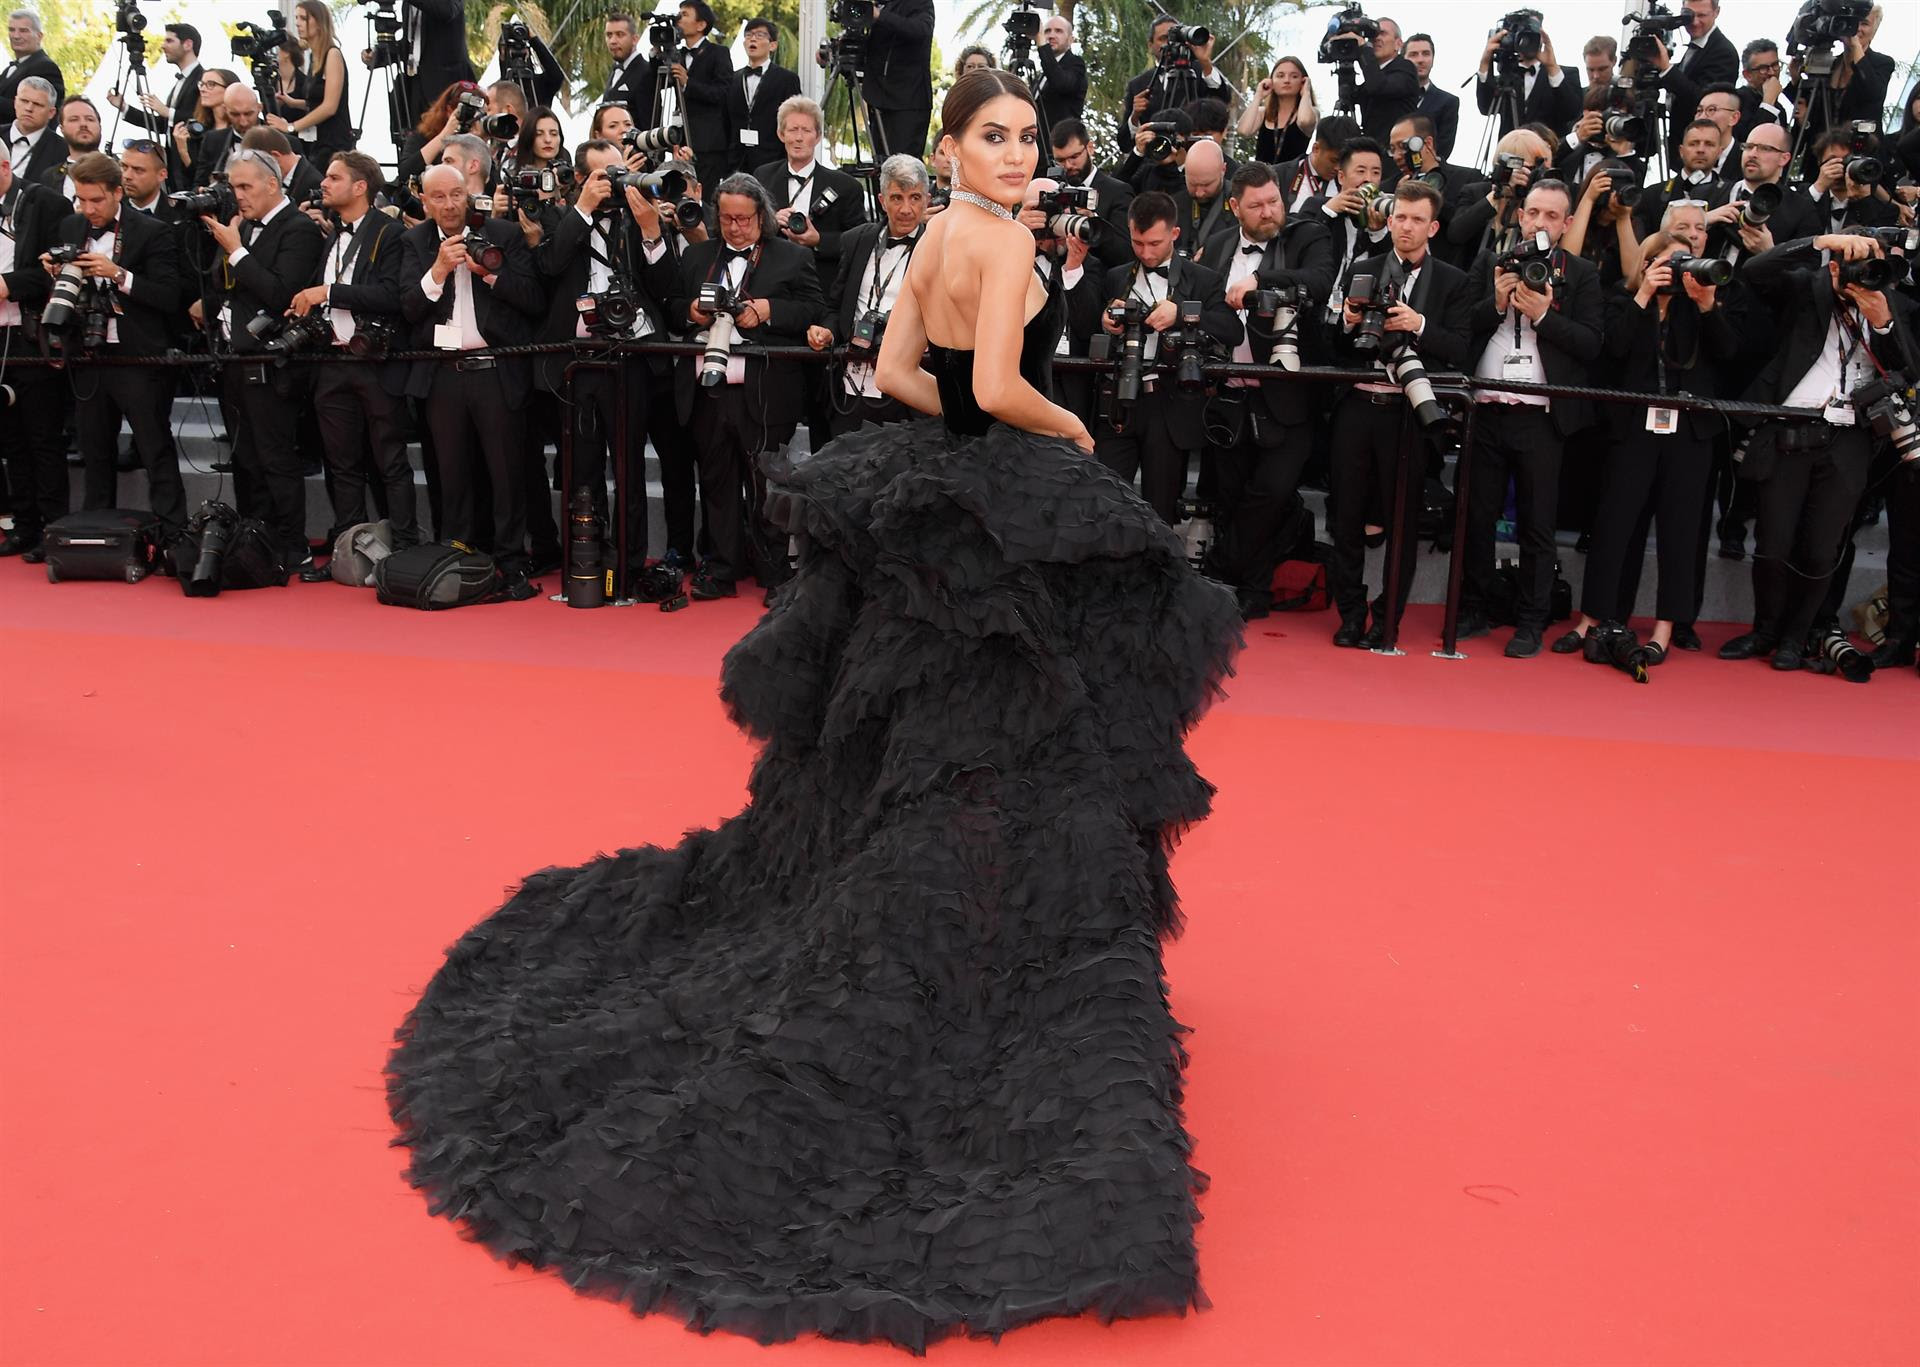 GLOBAL STYLE INFLUENCER, CAMILA COELHO, WEARS CUSTOM RALPH & RUSSO TO THE 71st ANNUAL CANNES FILM FESTIVAL OPENING CEREMONY